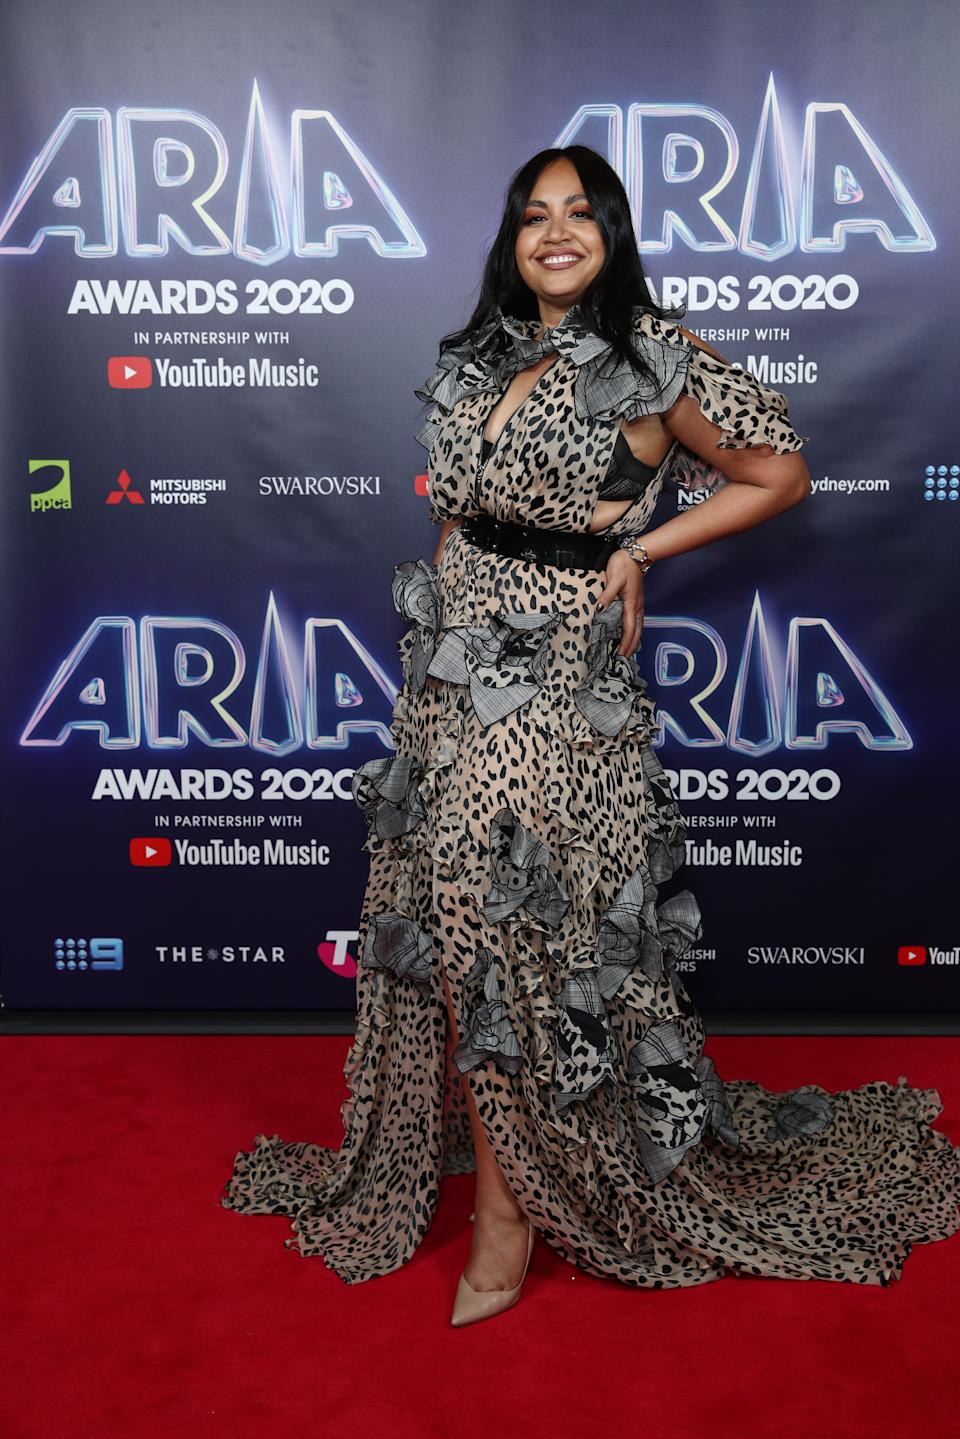 Jessica Mauboy wears a floor-length leopard print gown on the red carpet at the 2020 ARIA Awards at The Star on November 24, 2020 in Sydney, Australia.